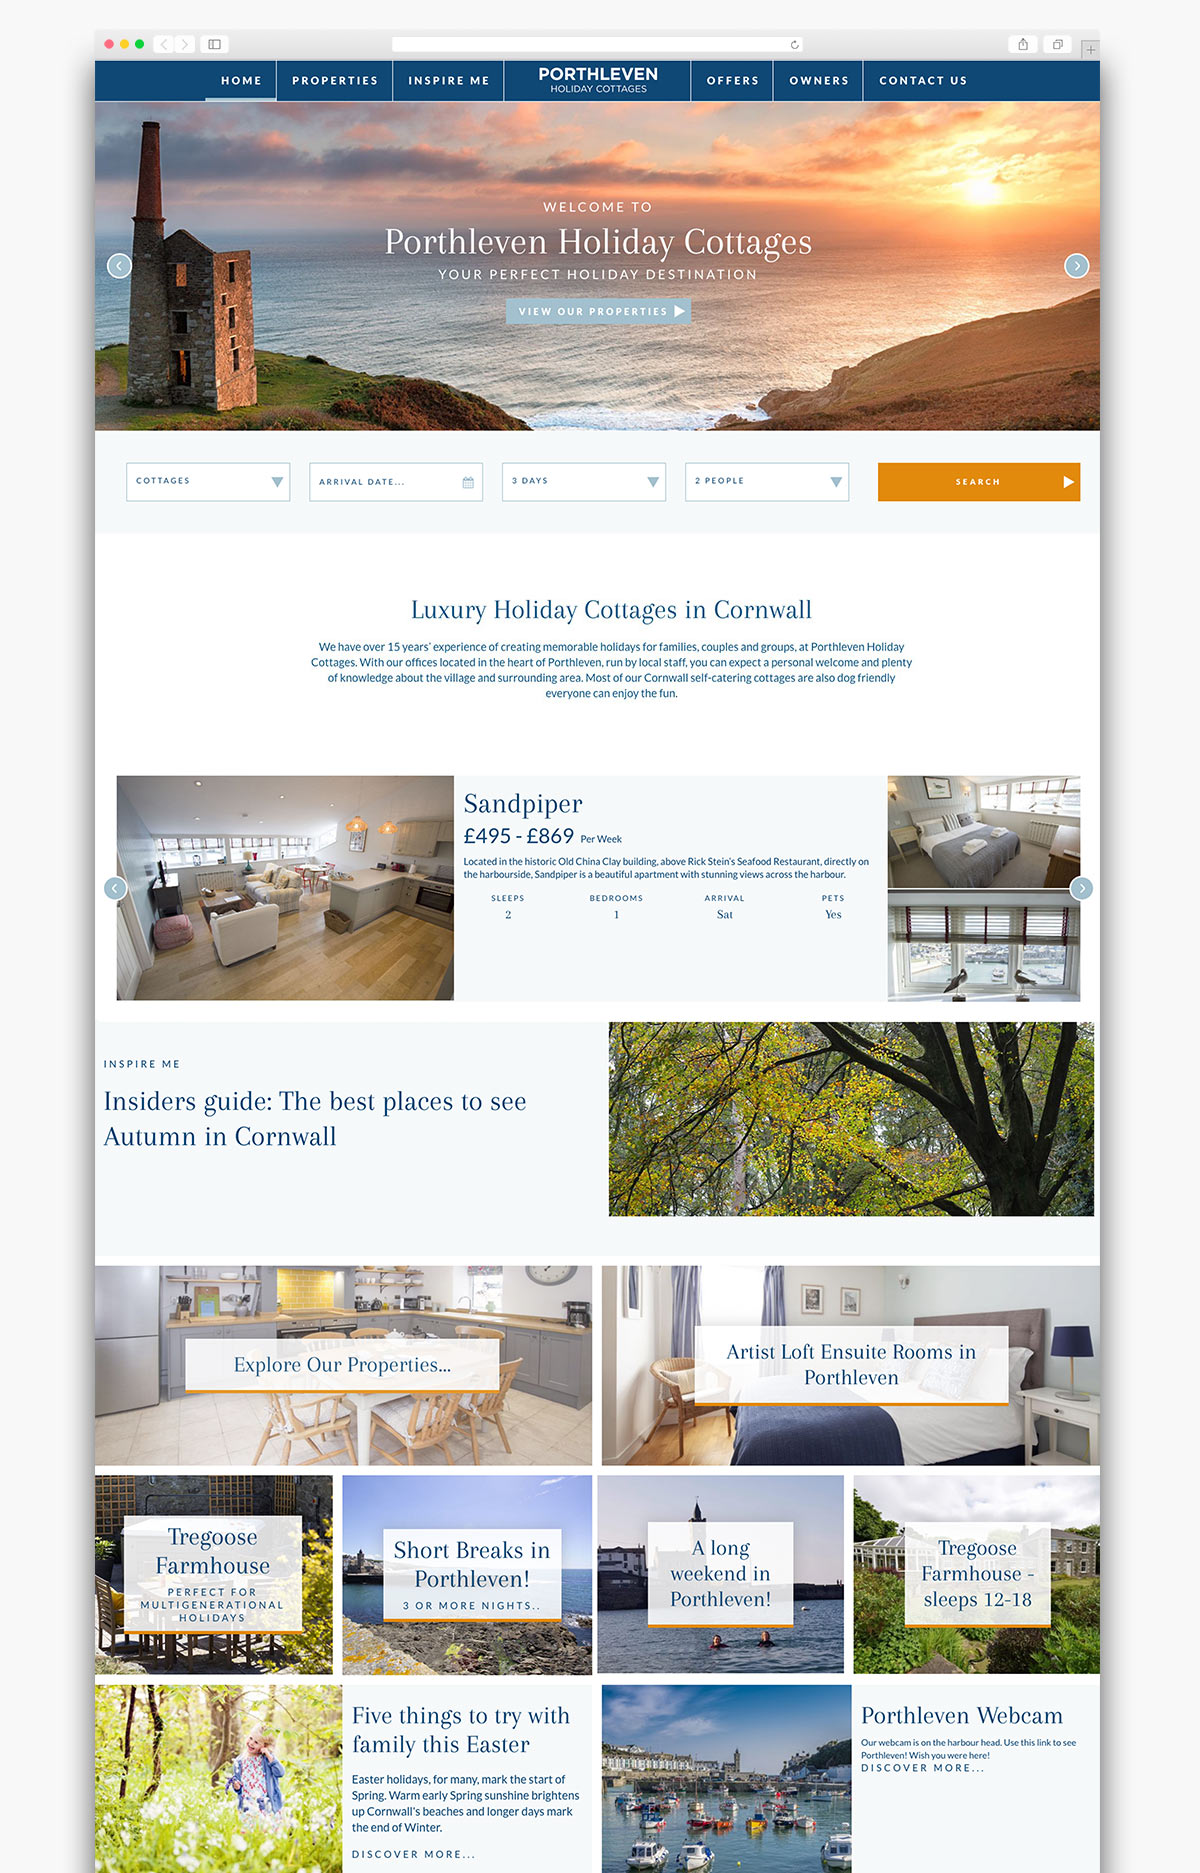 Porthleven Holiday Cottages Website Homepage Design